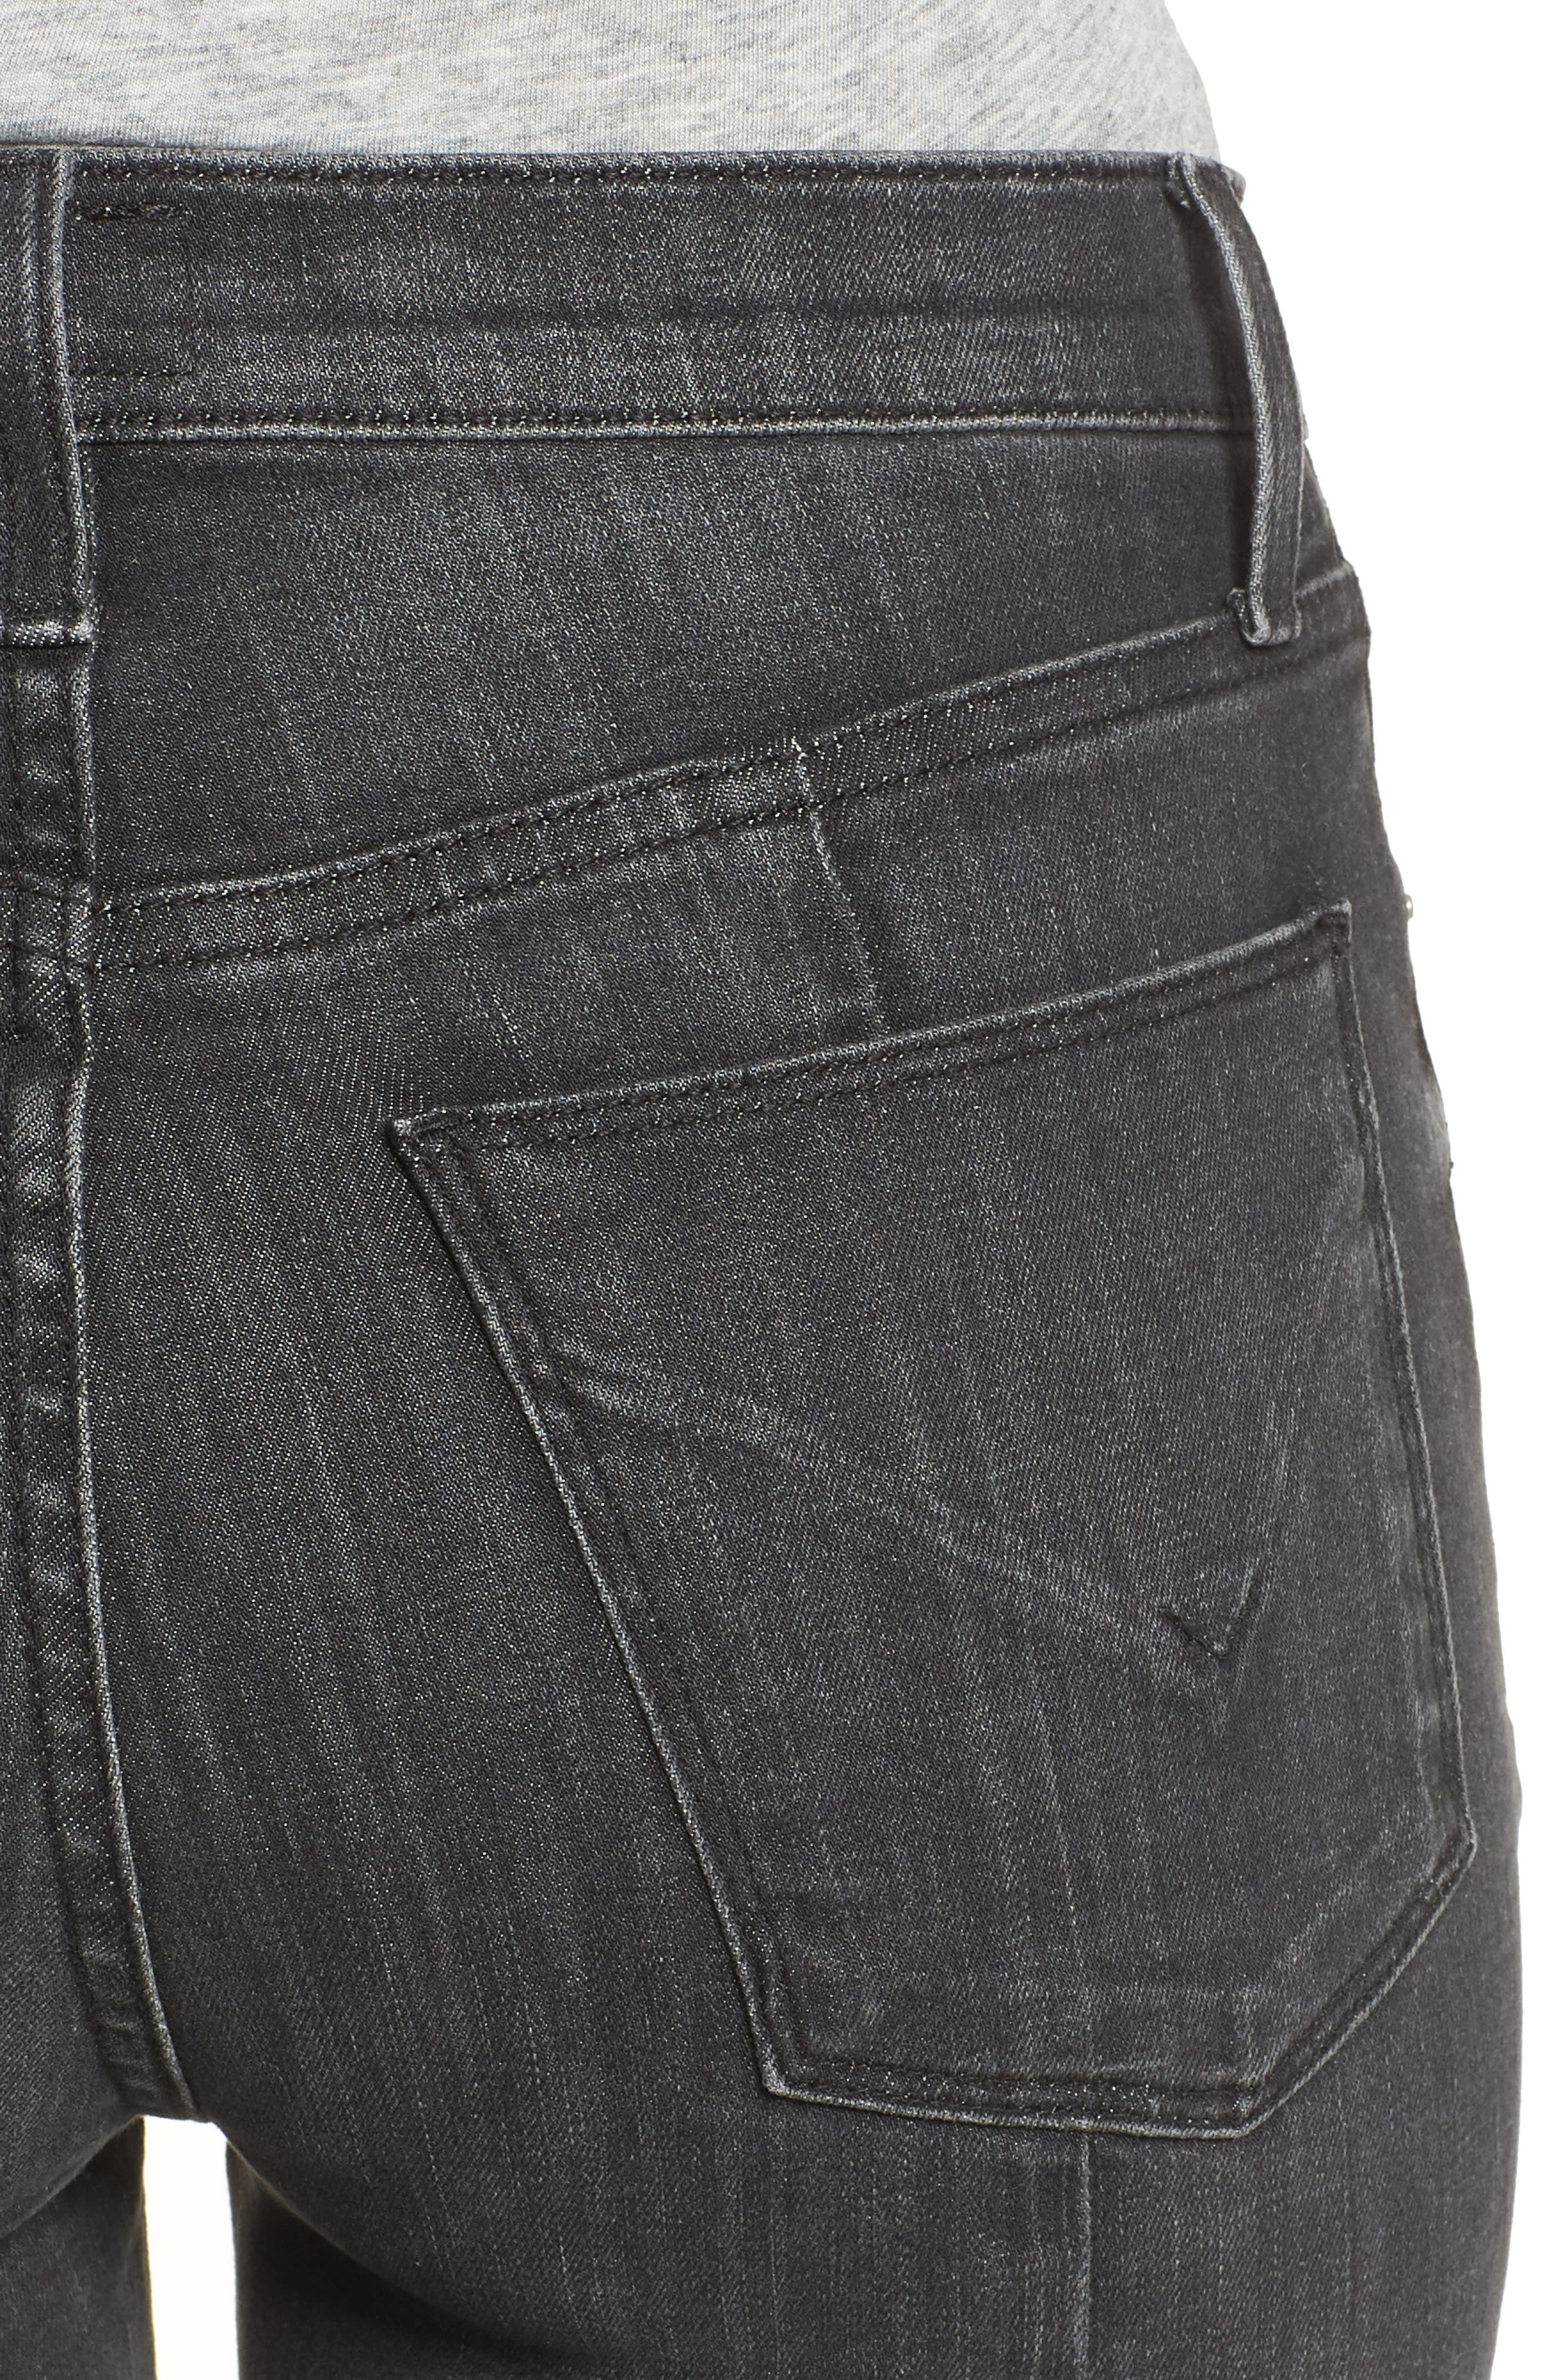 Holly High Waist Crop Flare Jeans,                             Alternate thumbnail 4, color,                             REAL WORLD